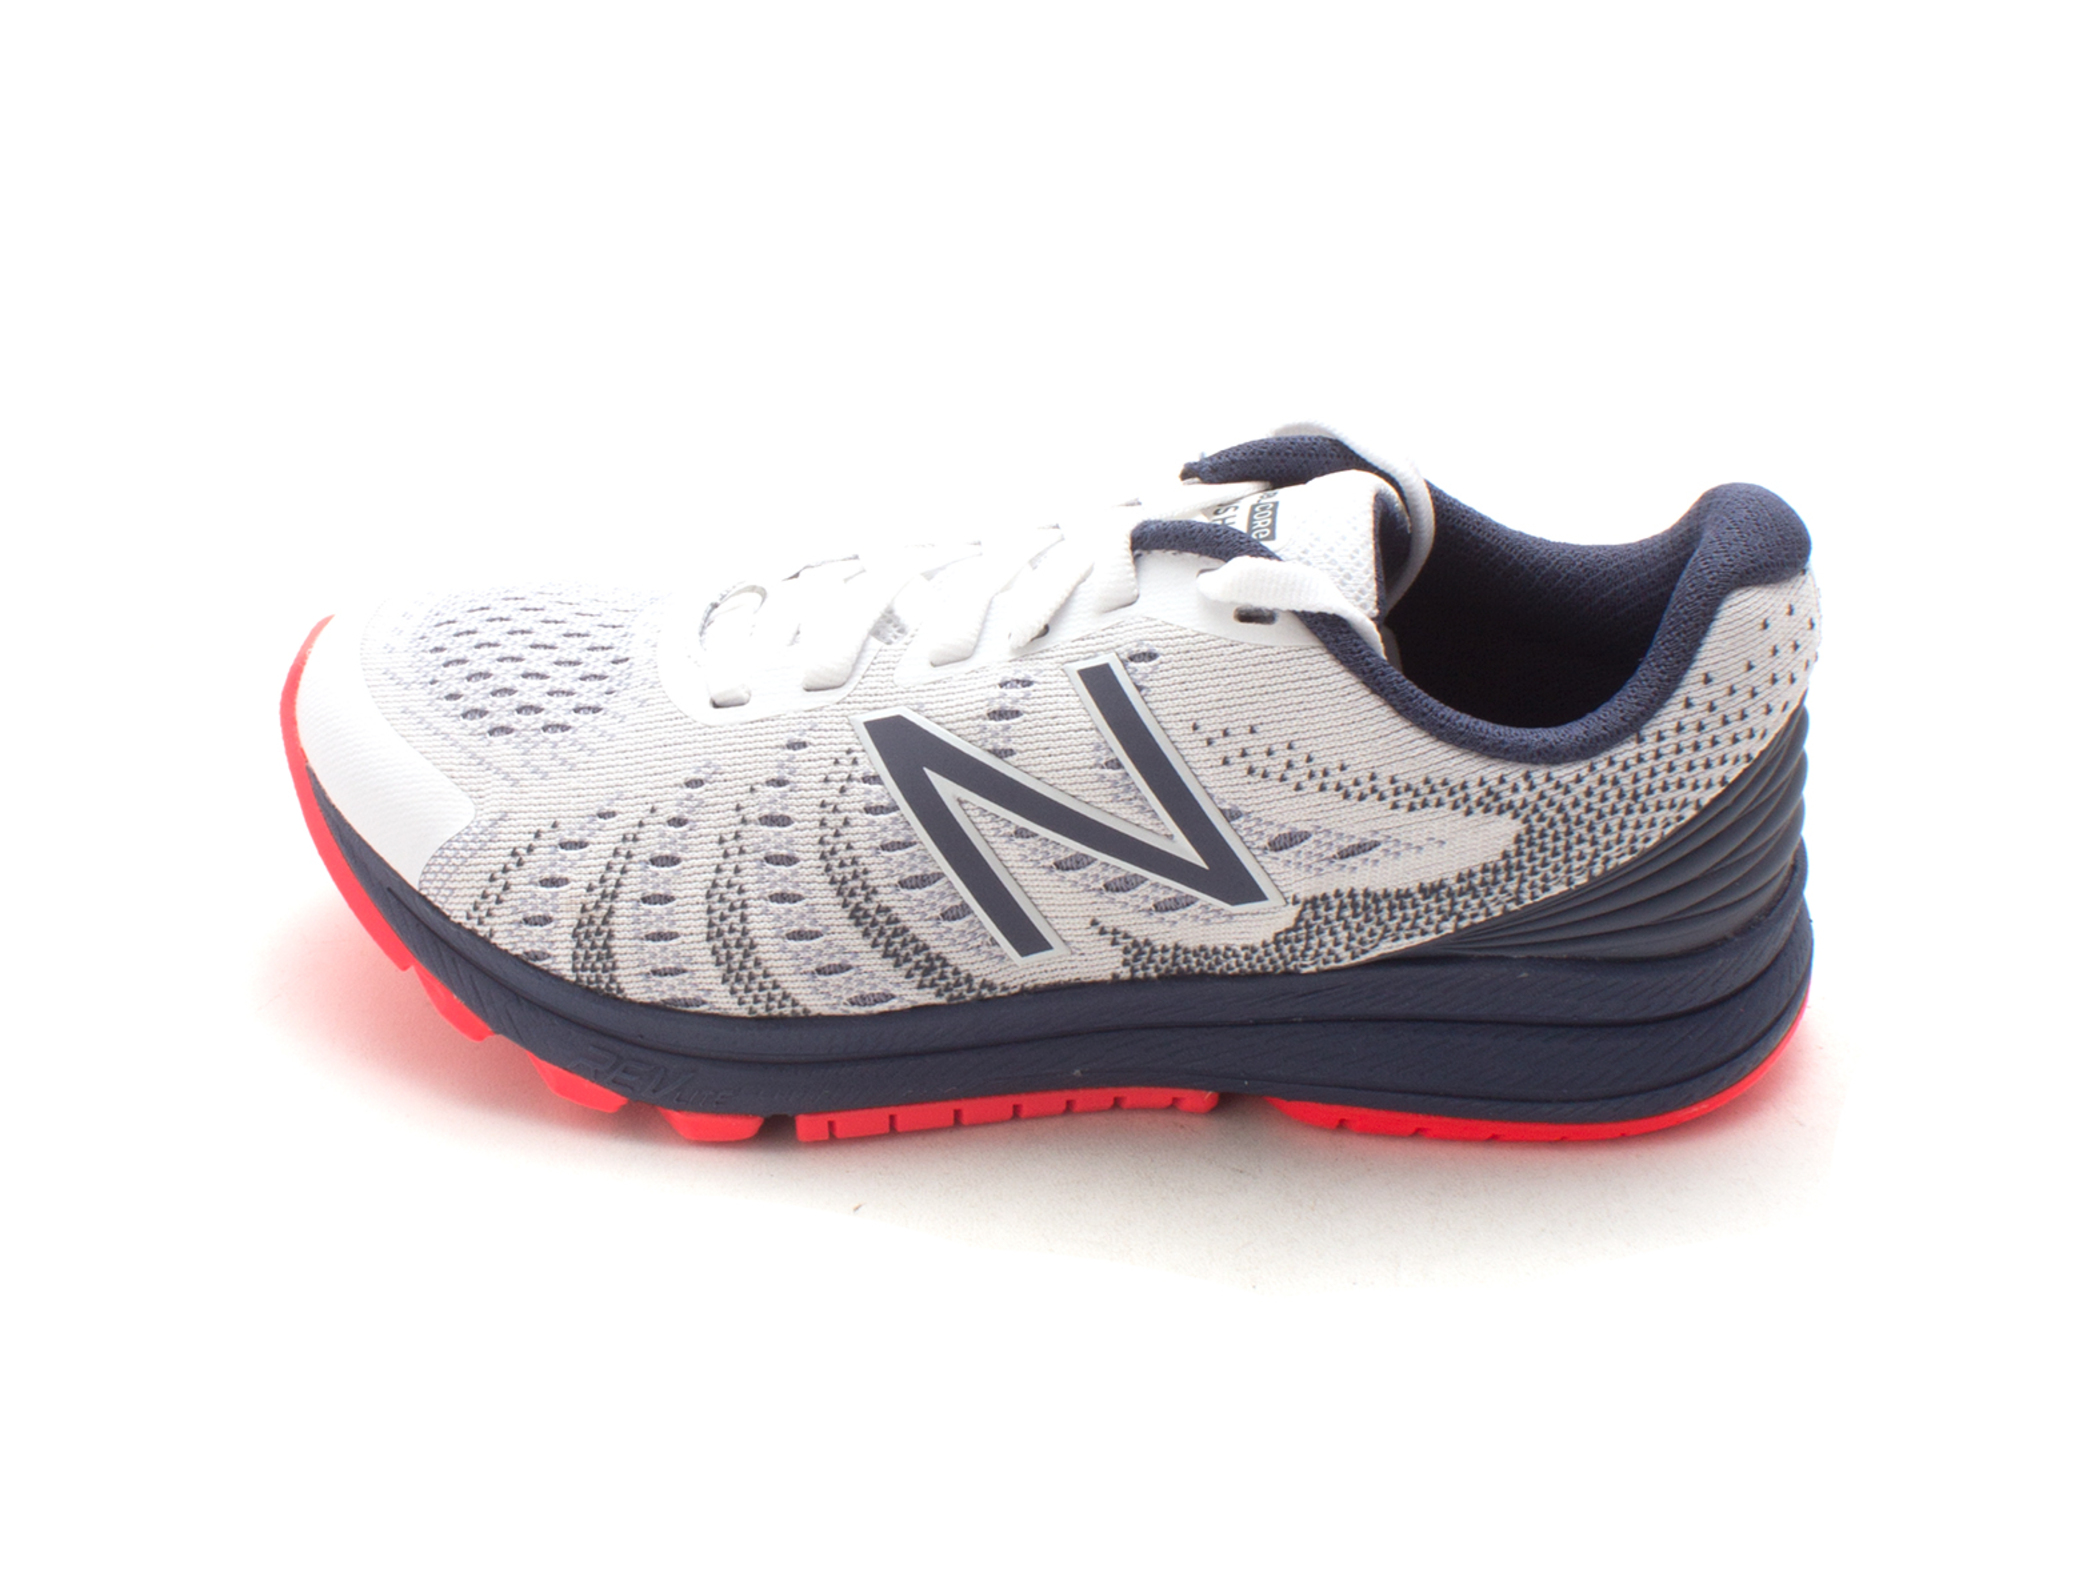 New Balance Womens Fuel Core Fabric Low Top Lace Up Running Sneaker by New Balance